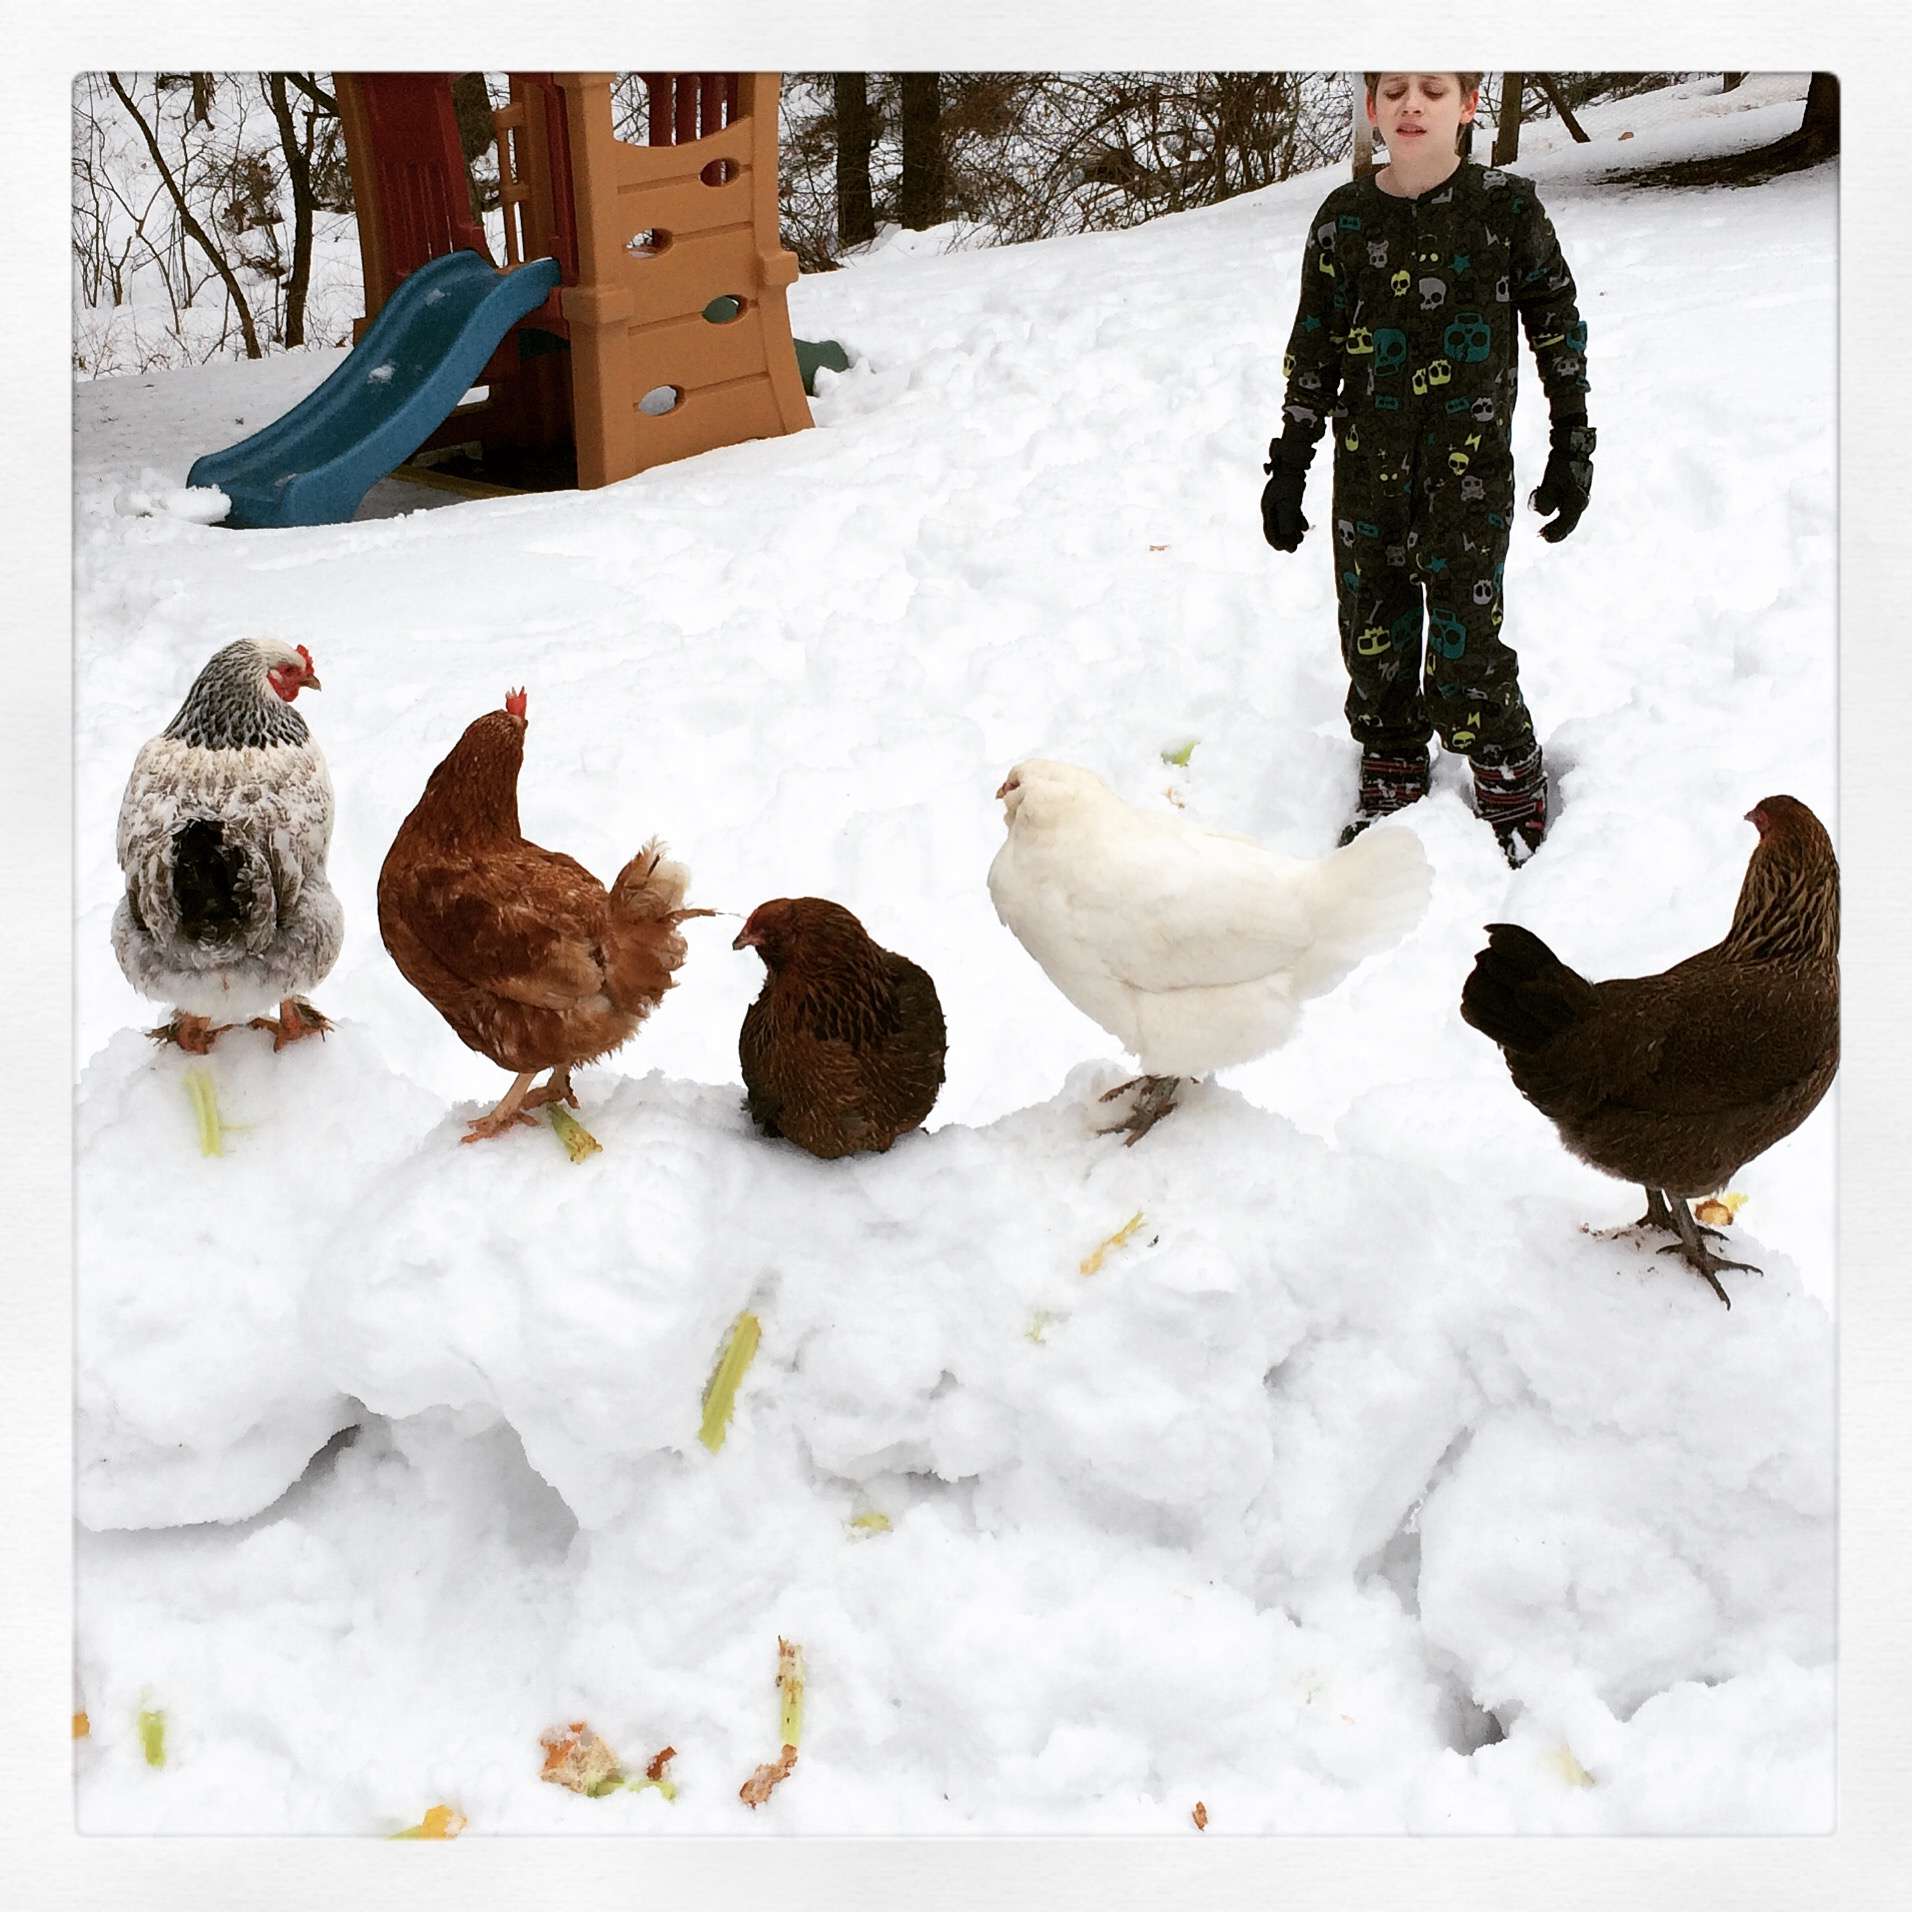 Speaking of pigs: Chickens are not fond of snow.